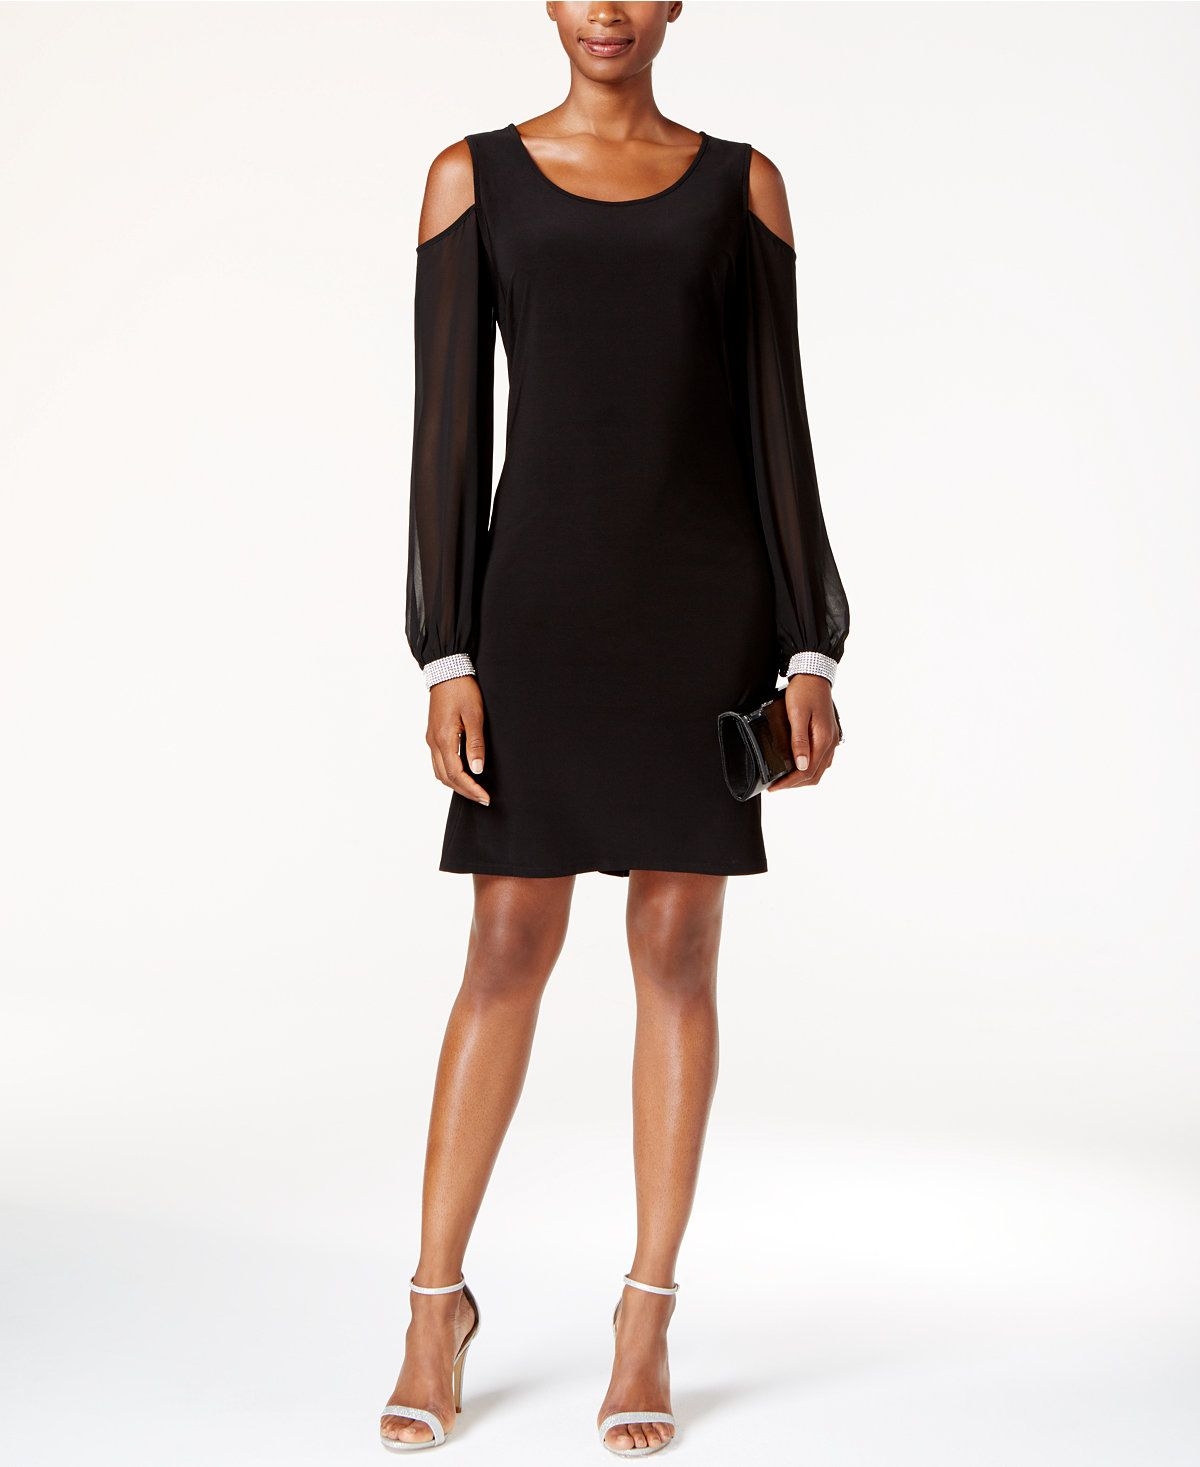 2a26baee2b MSK Embellished Cold-Shoulder Cocktail Dress - Dresses - Women - Macy s